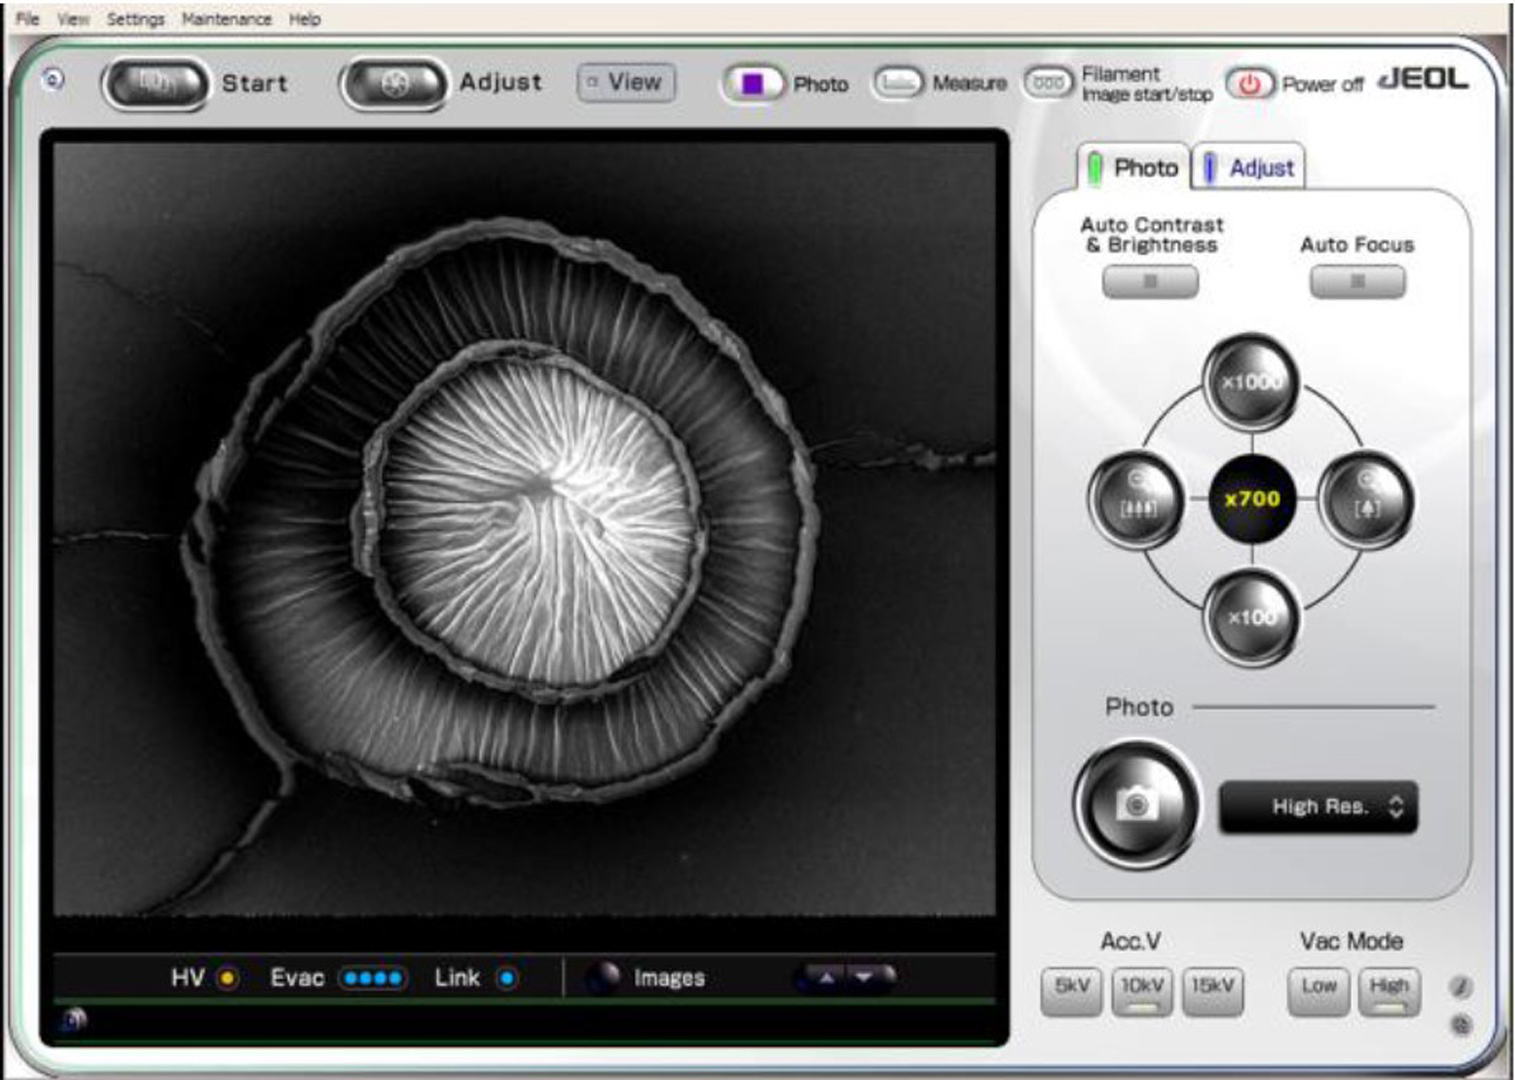 ©ISEA2016: 22nd International Symposium on Electronic Art, Anastasia Tyurina, Exploring the Medium: The Indexical Function of Artistic Photomicrography Made by the Scanning Electron Microscope